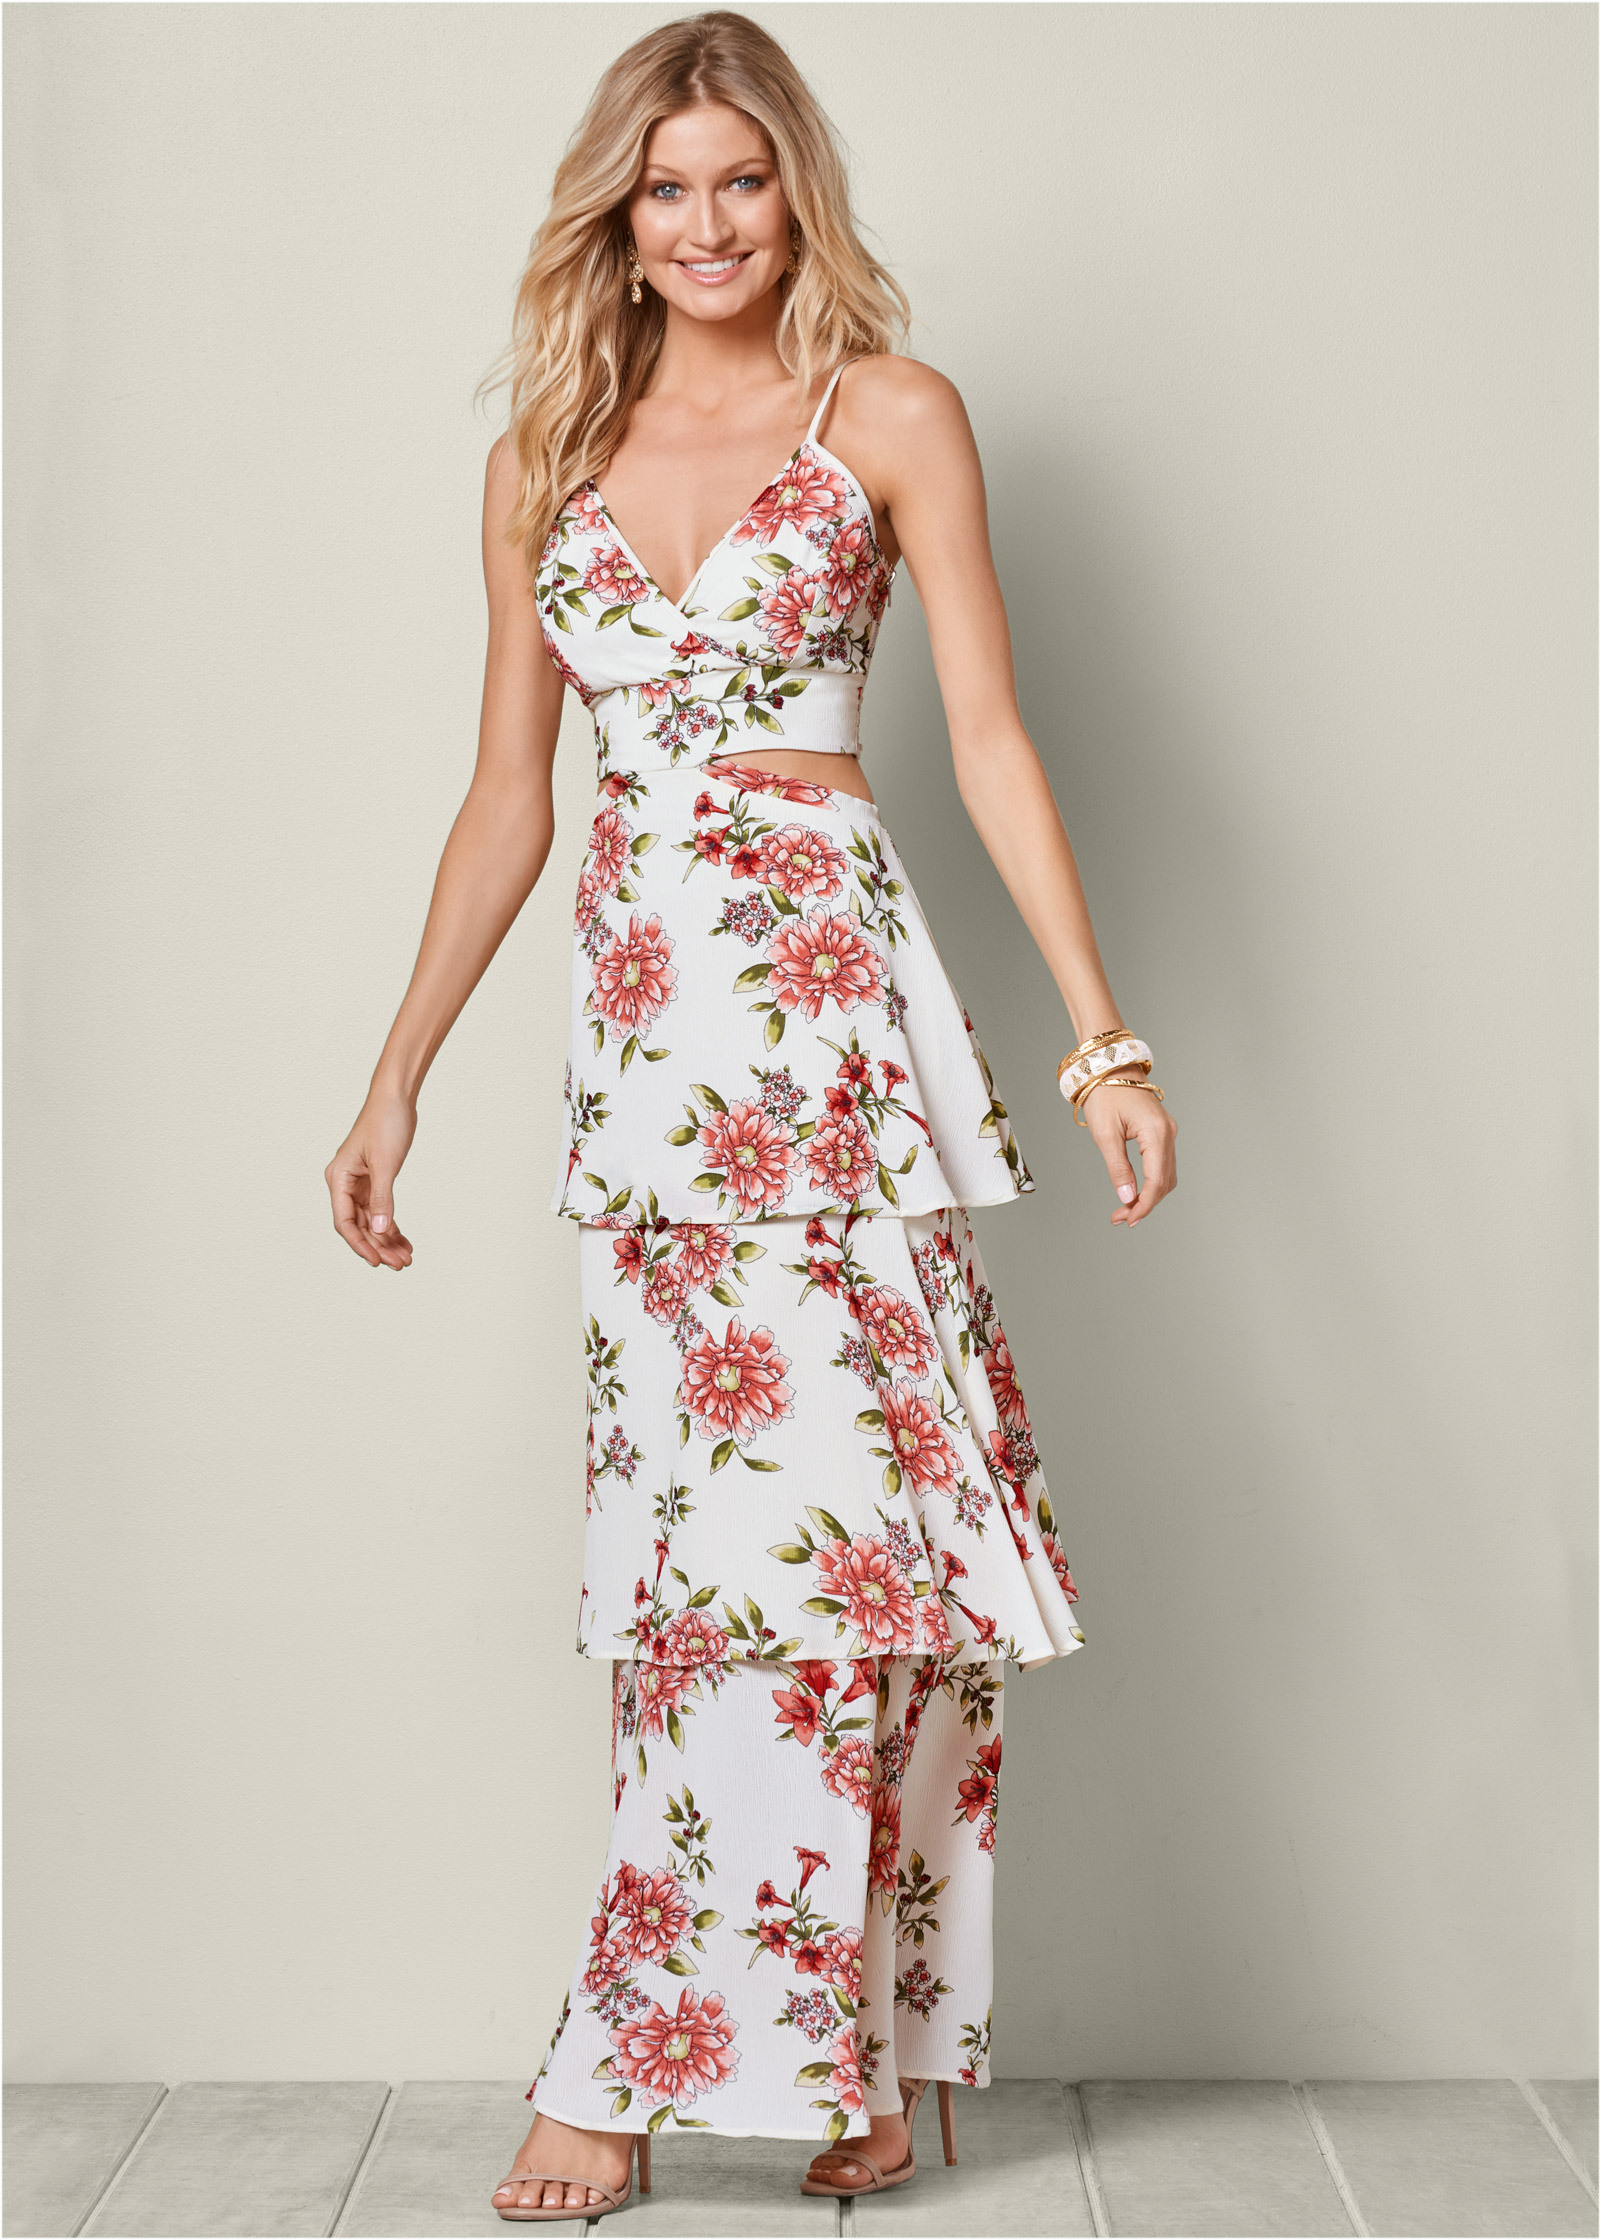 Floral Dresses for Wedding Guests